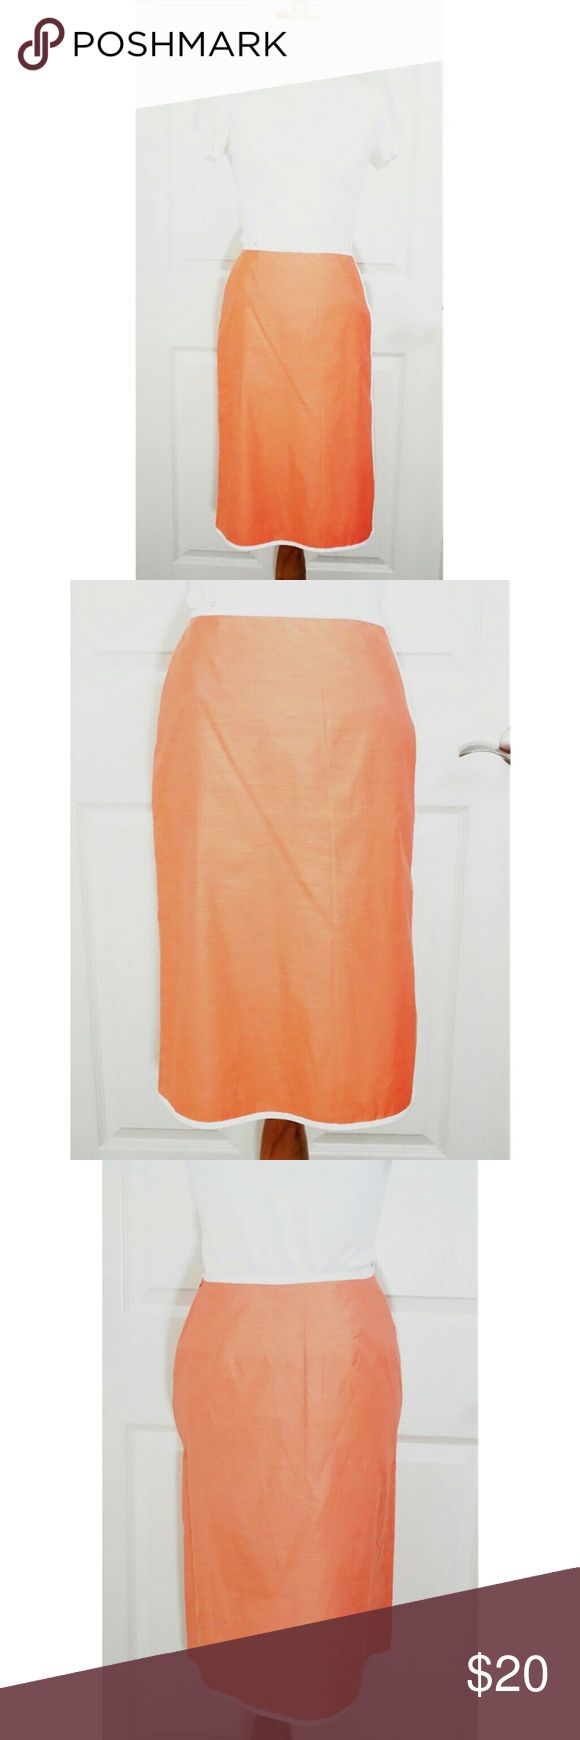 """Banana Republic PEACE ORANGE Skirt Size 0 NEW *New With Tag* Banana Republic skirt in Peace/Salmon/Orange color. White trim. Side hidden zipper.   Shell: 53% Polyester, 47% Cotton. No lining.   Waist: 12.5"""" Length: 23"""" Size: 0  Hand wash cold. Line dry. Warm iron. RP$58.00. Perfect for gift or present. Banana Republic Skirts"""